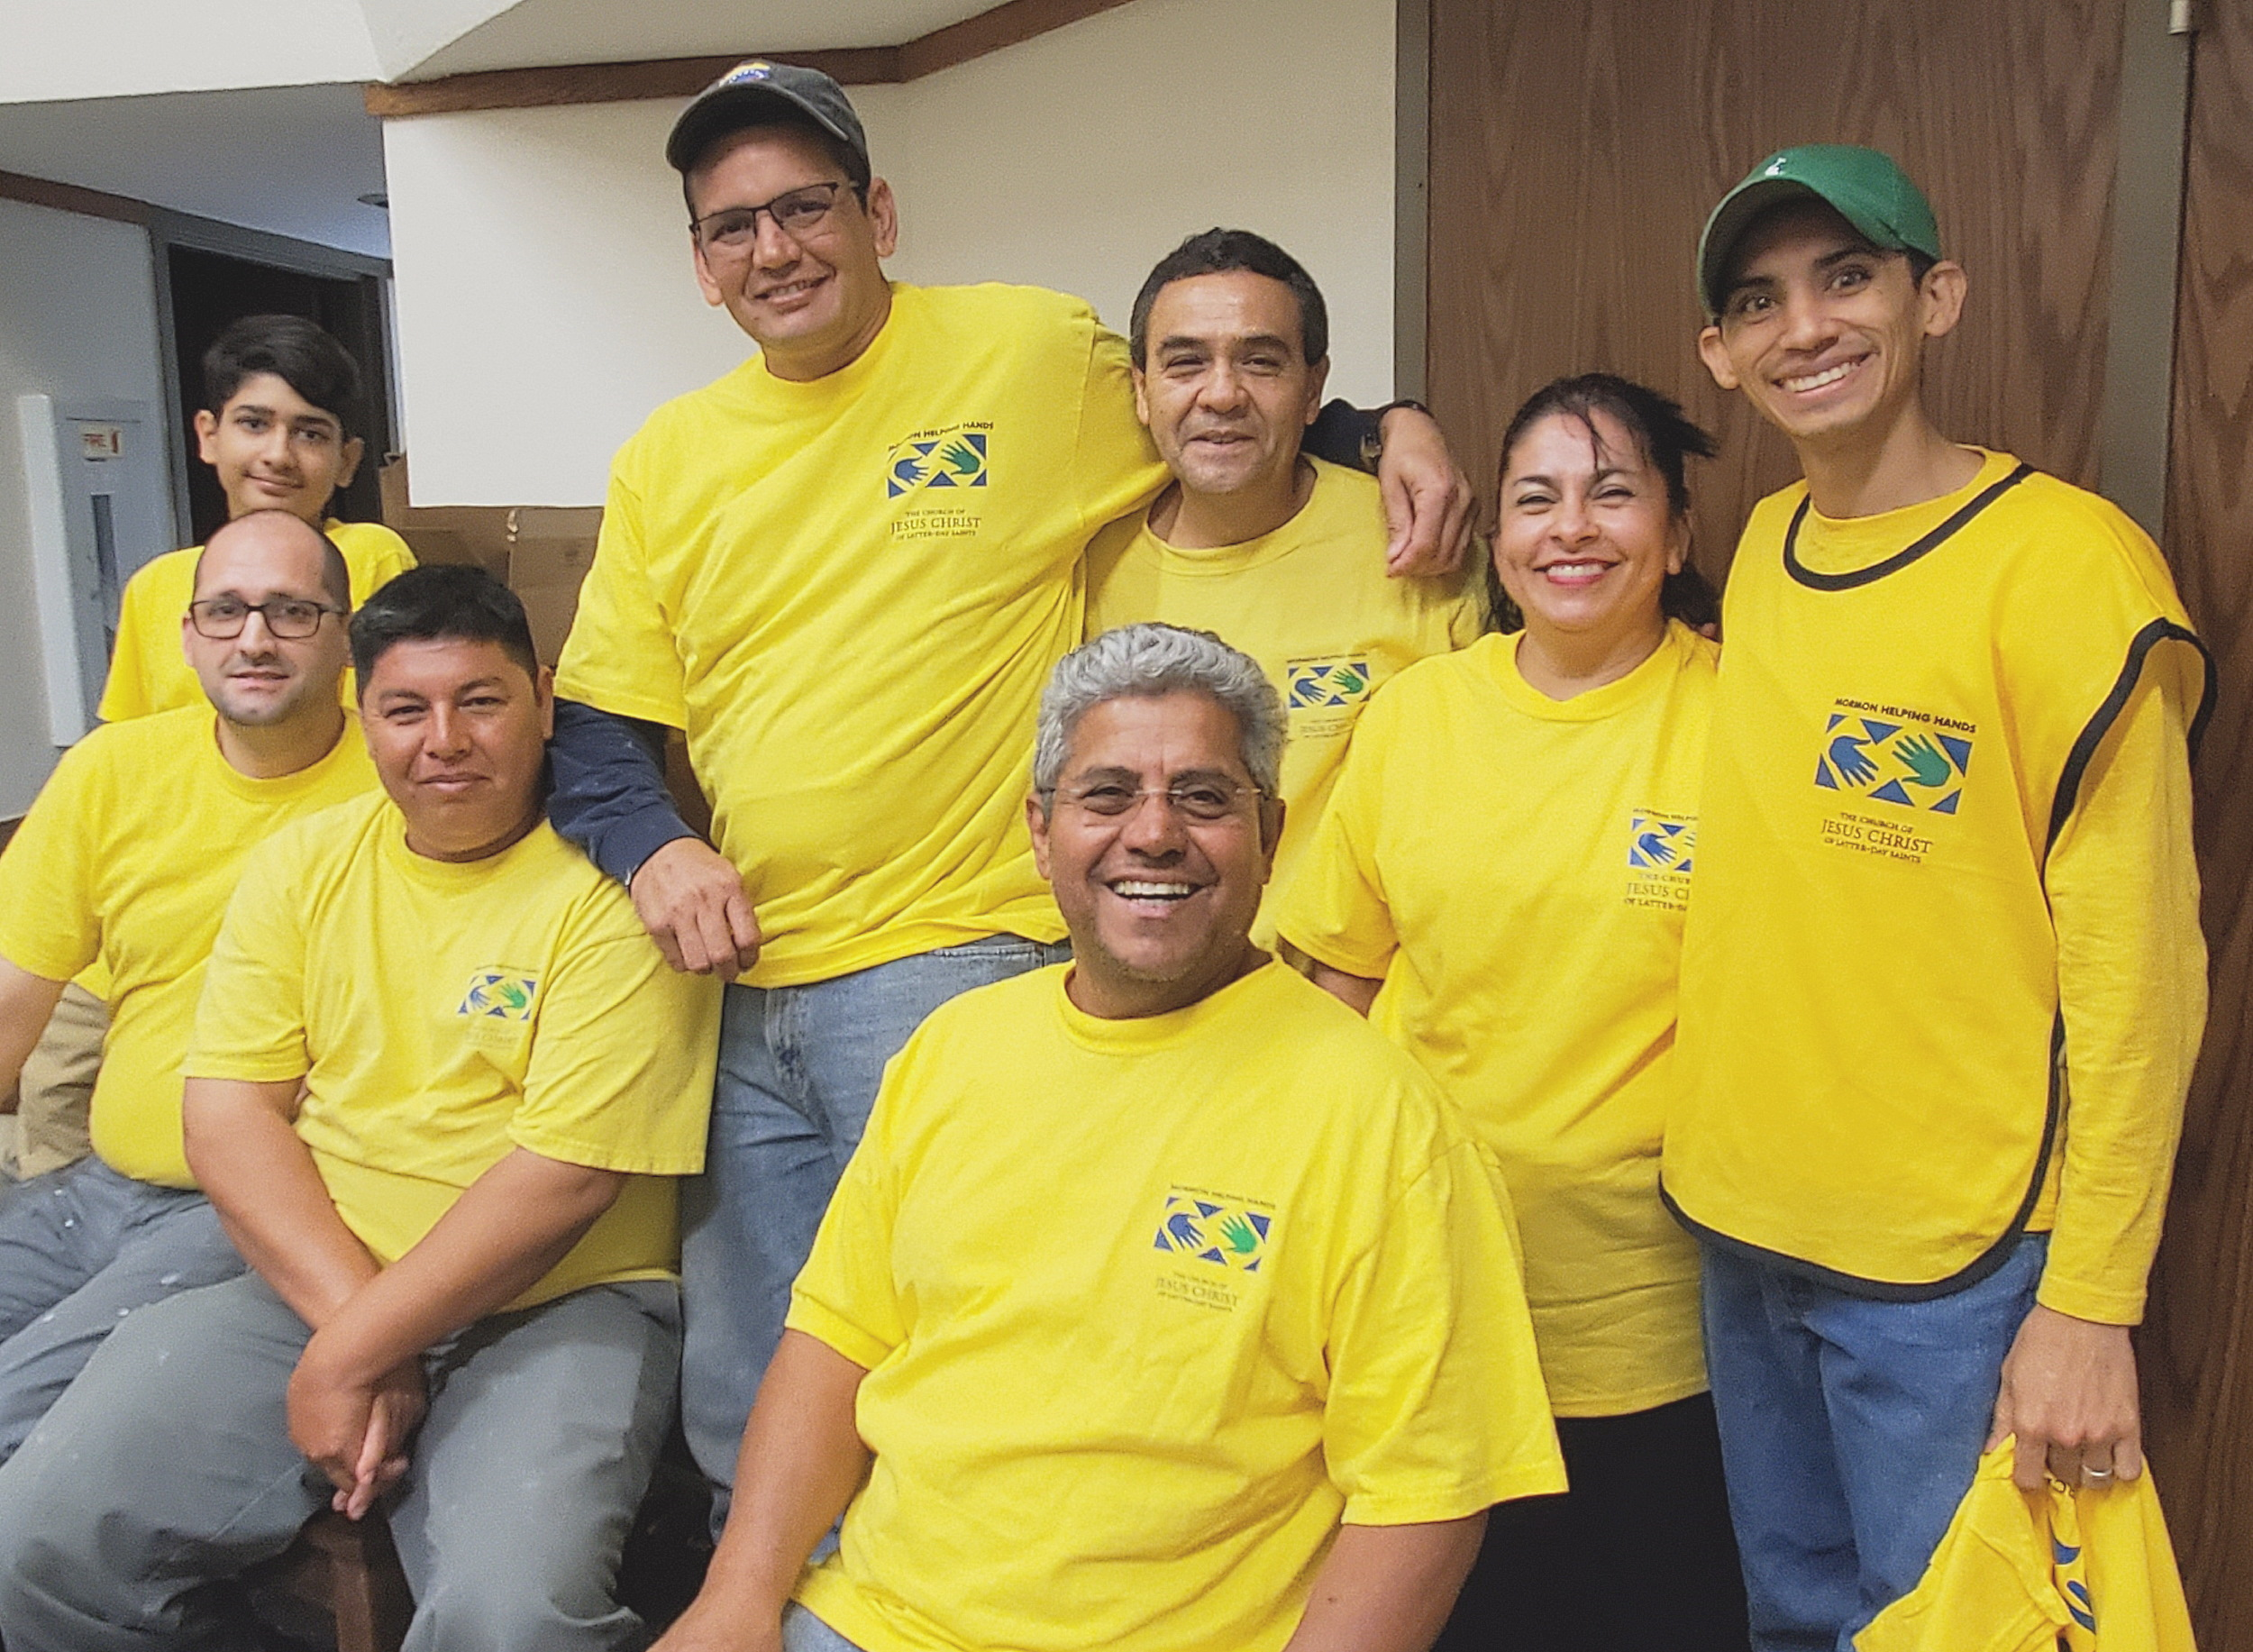 Members of the Houston 4th and 8th Spanish Wards don yellow shirts to volunteer and help those in need.